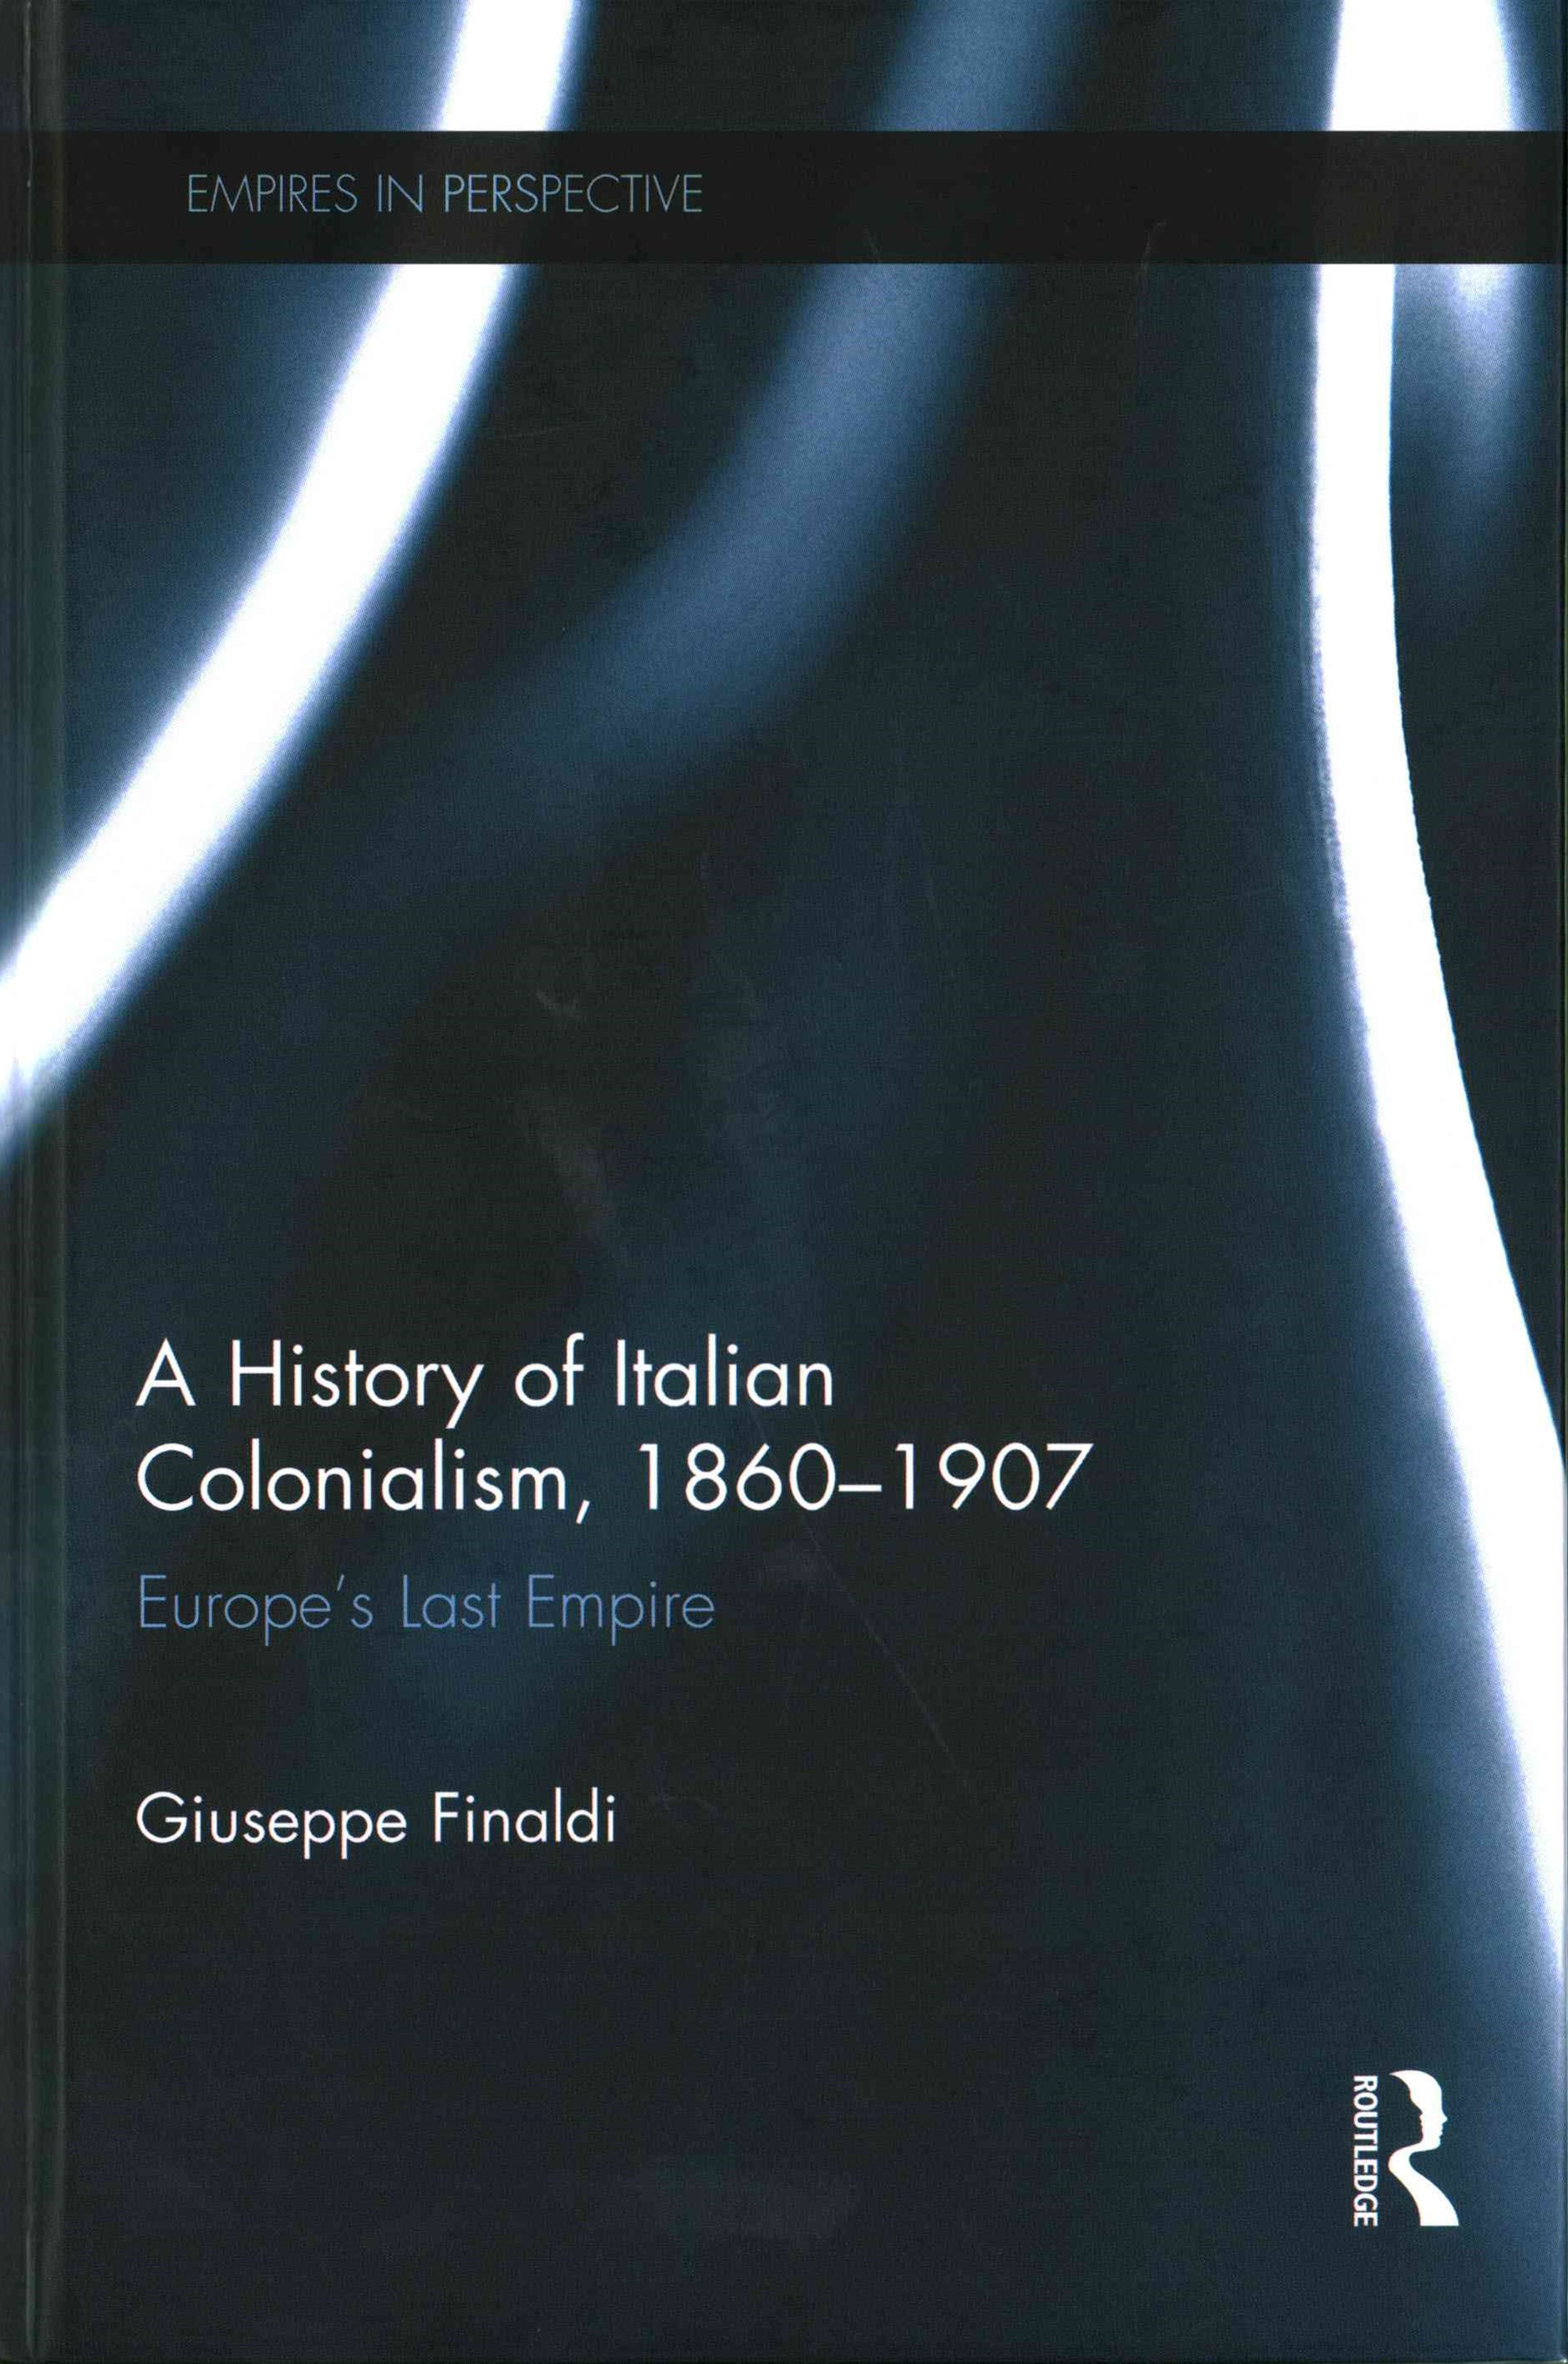 History of Italian Colonialism, 1860-1907